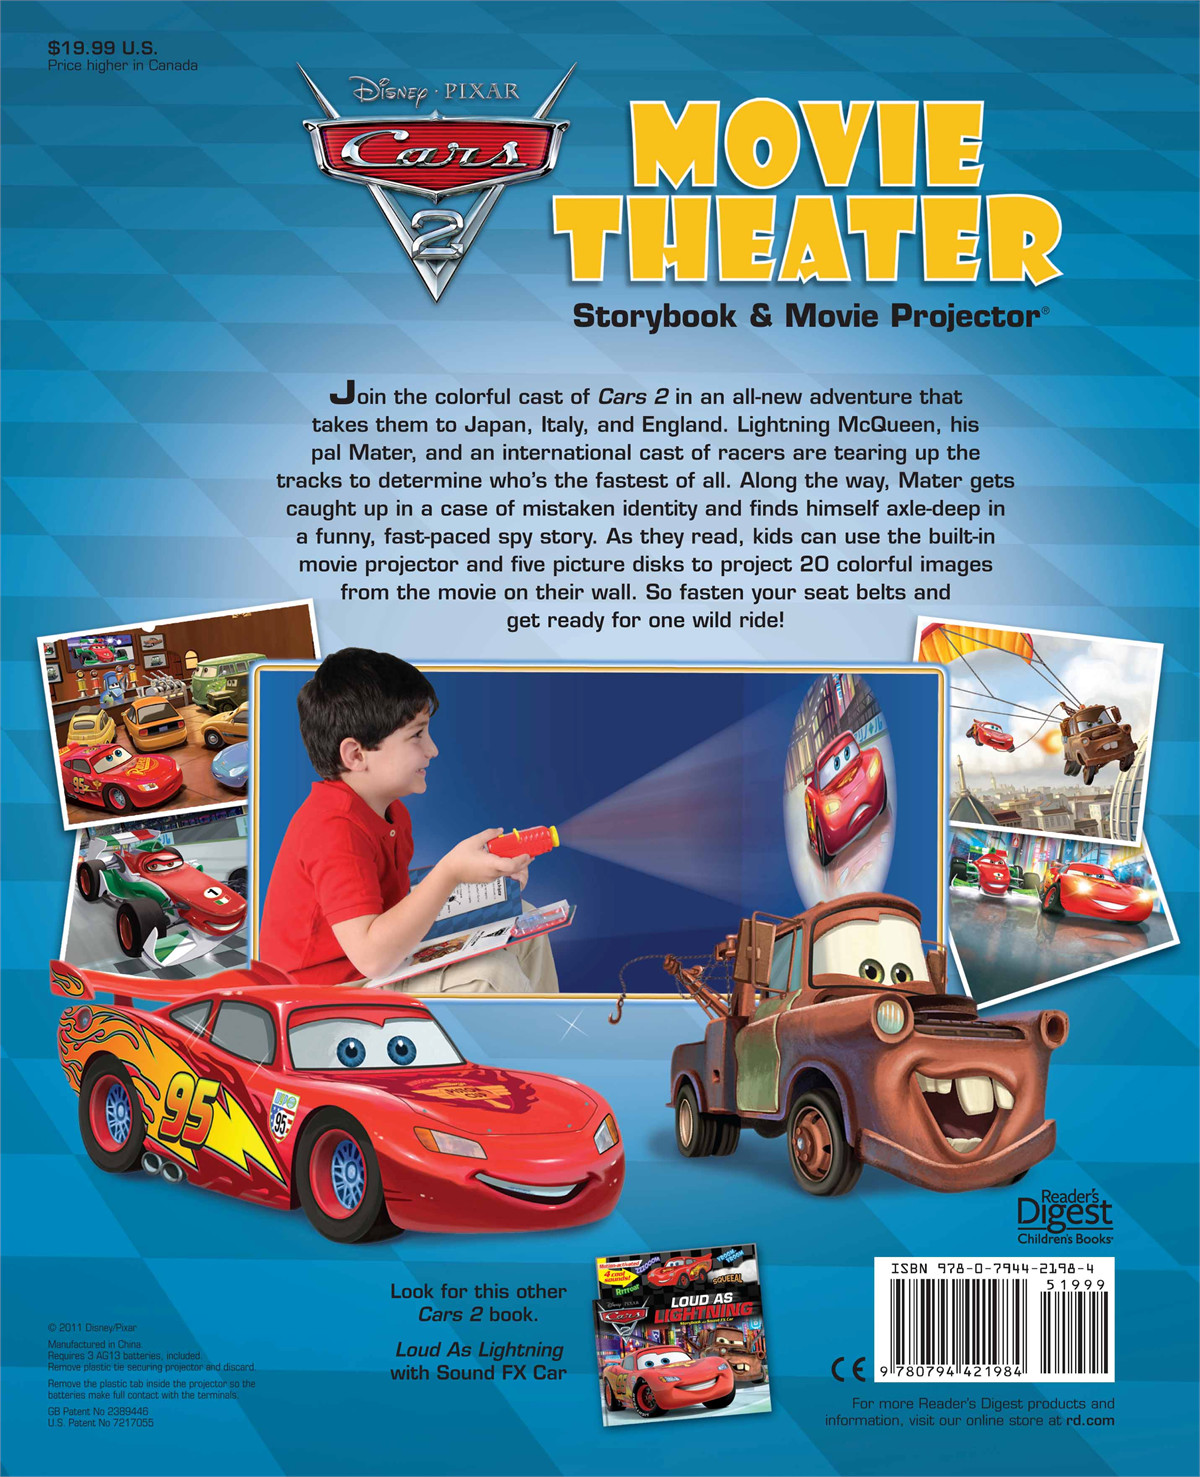 Disney-pixar-cars-2-movie-theater-9780794421984.in05